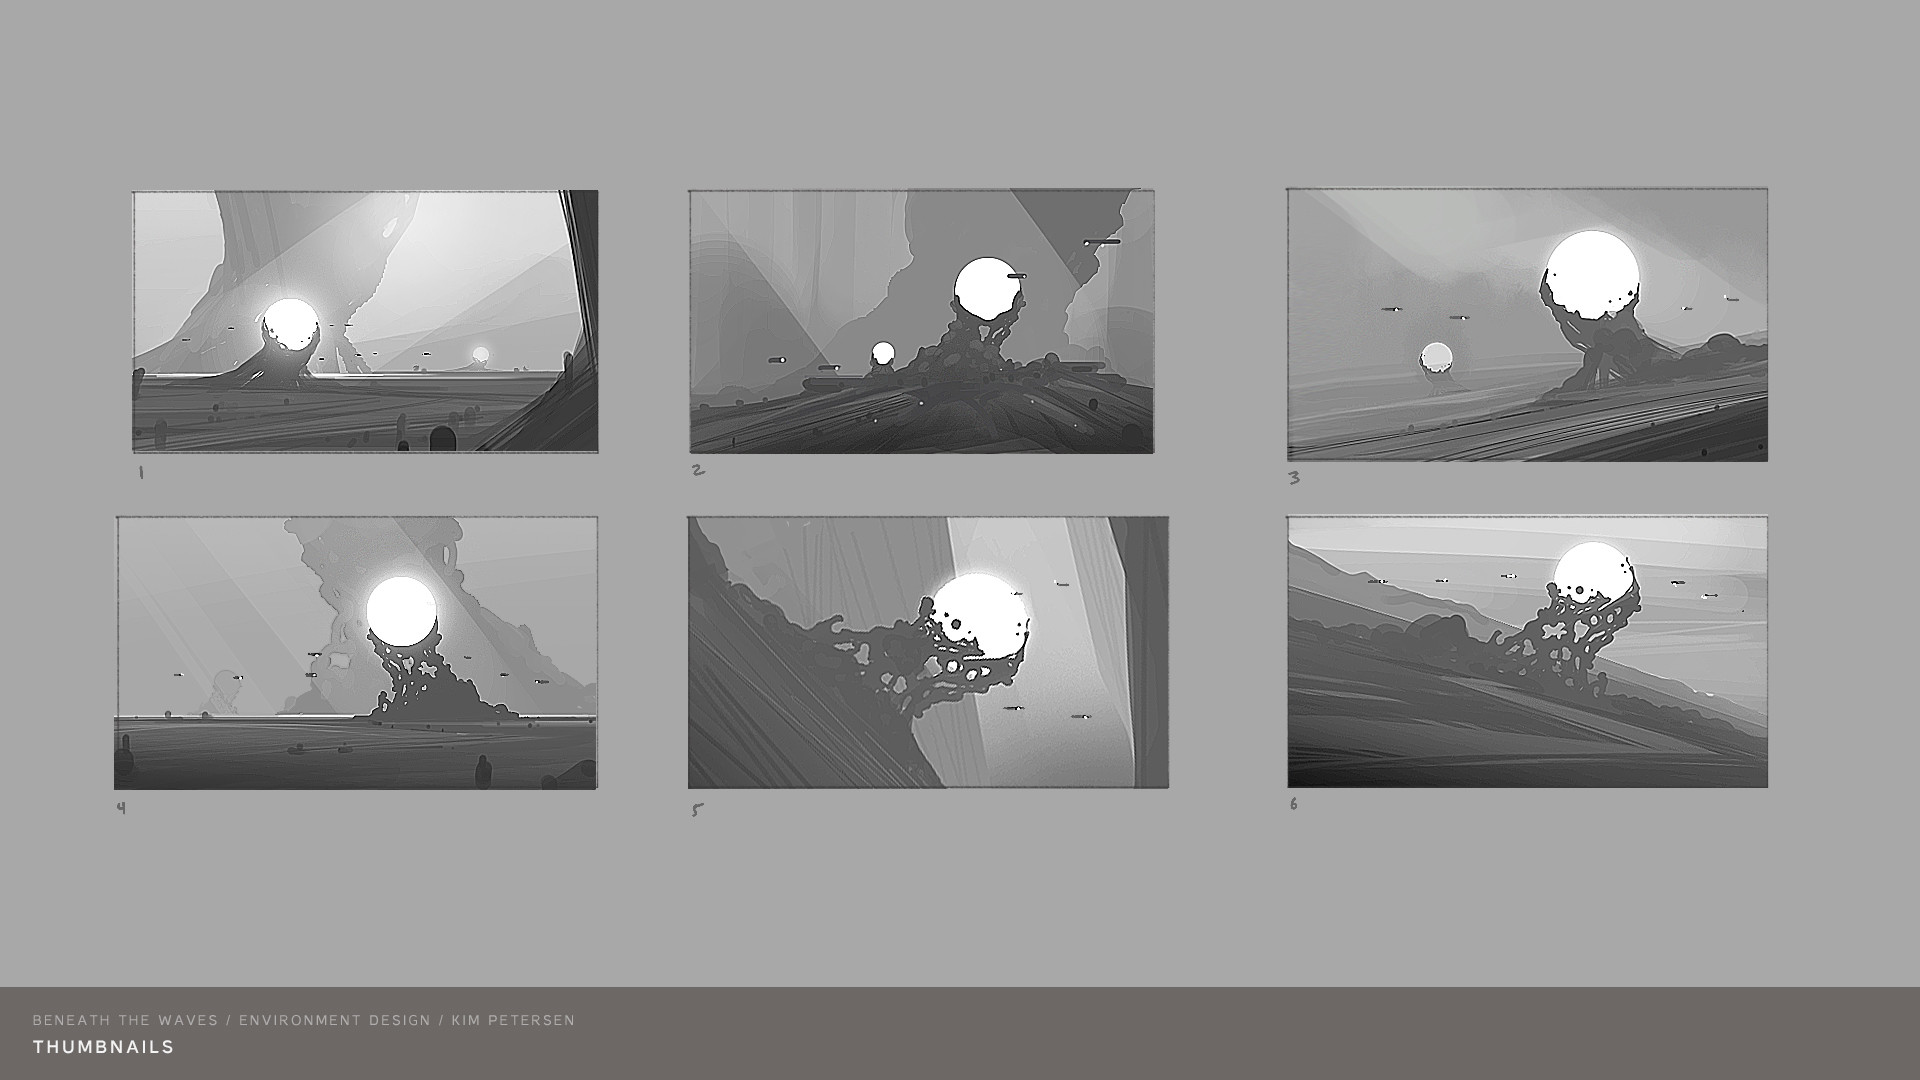 Kim petersen kp thumbnails